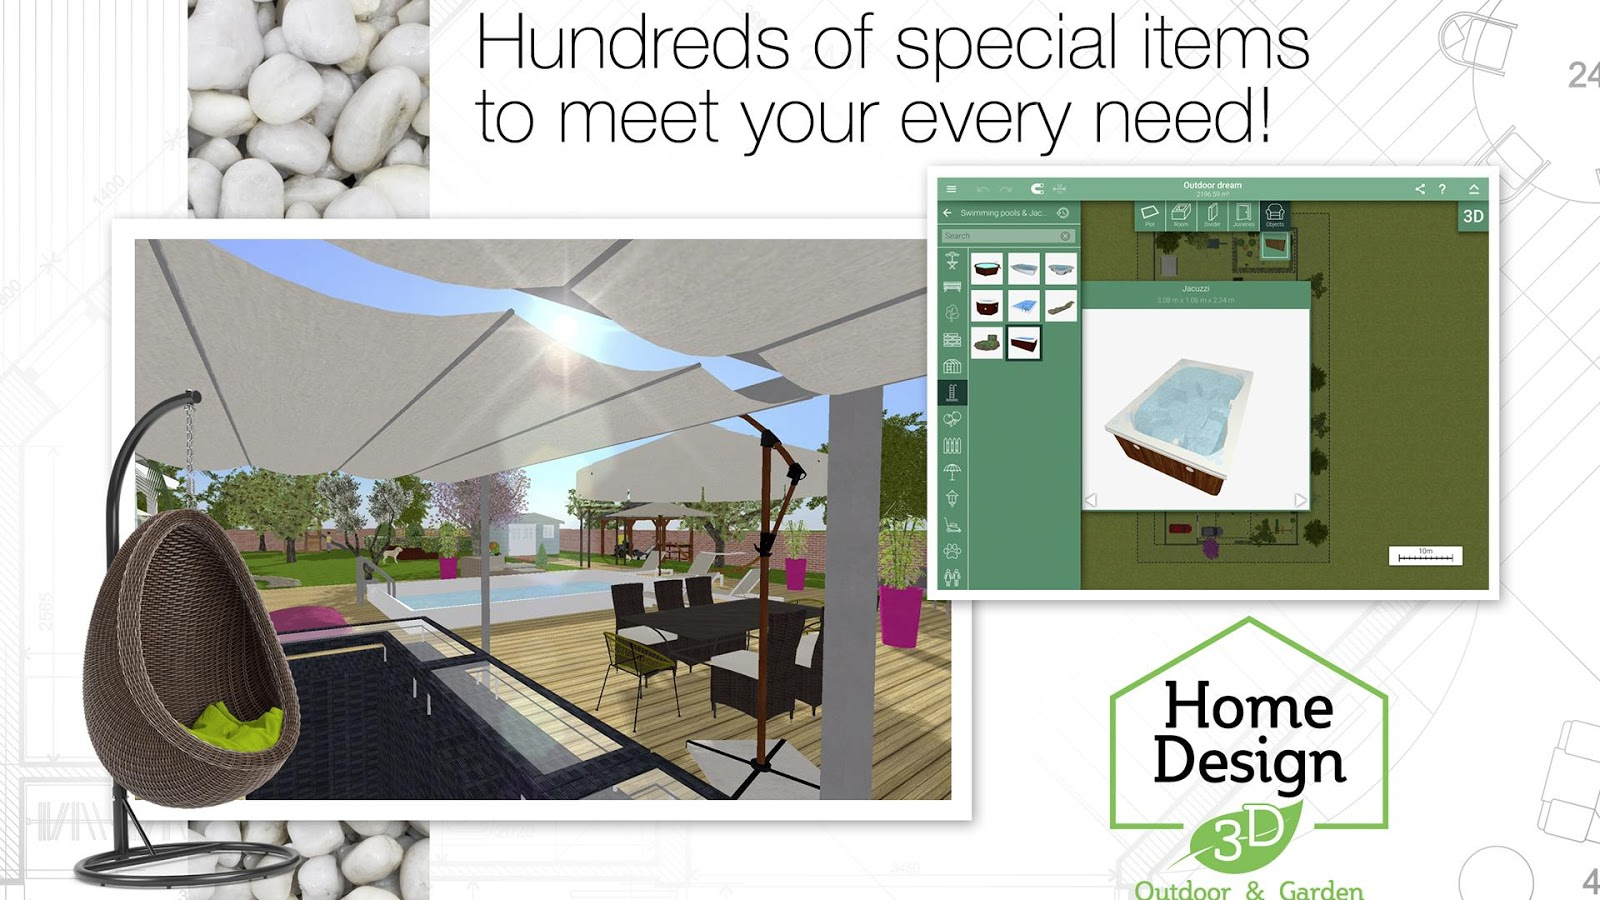 Home Design 3D Outdoor Garden Android Apps on Google Play